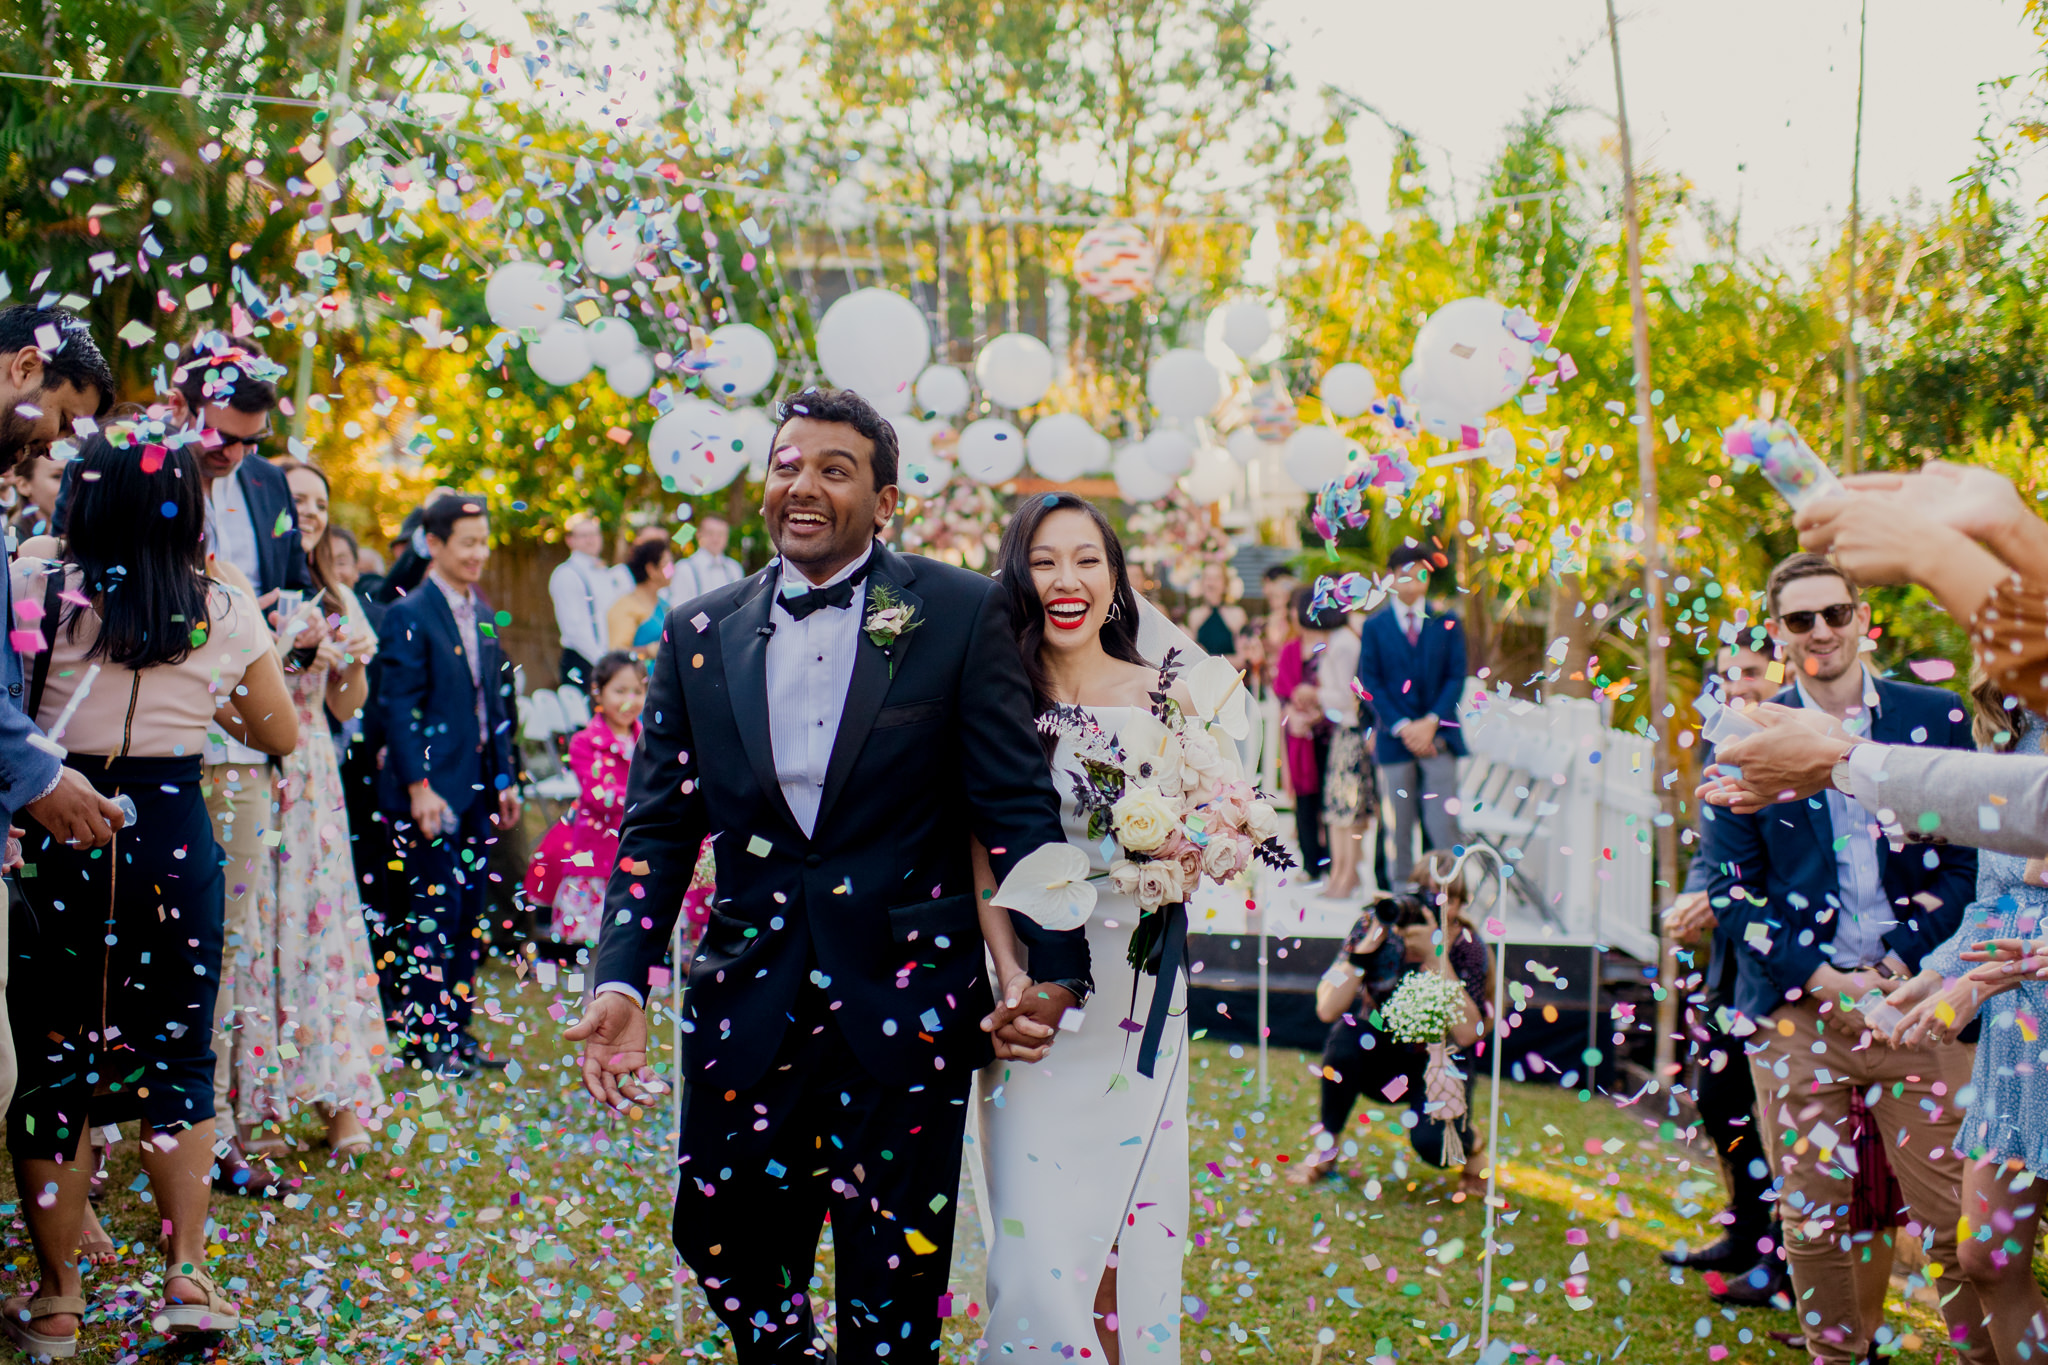 A wedding processional as guests throw confetti at the bride and groom outdoors